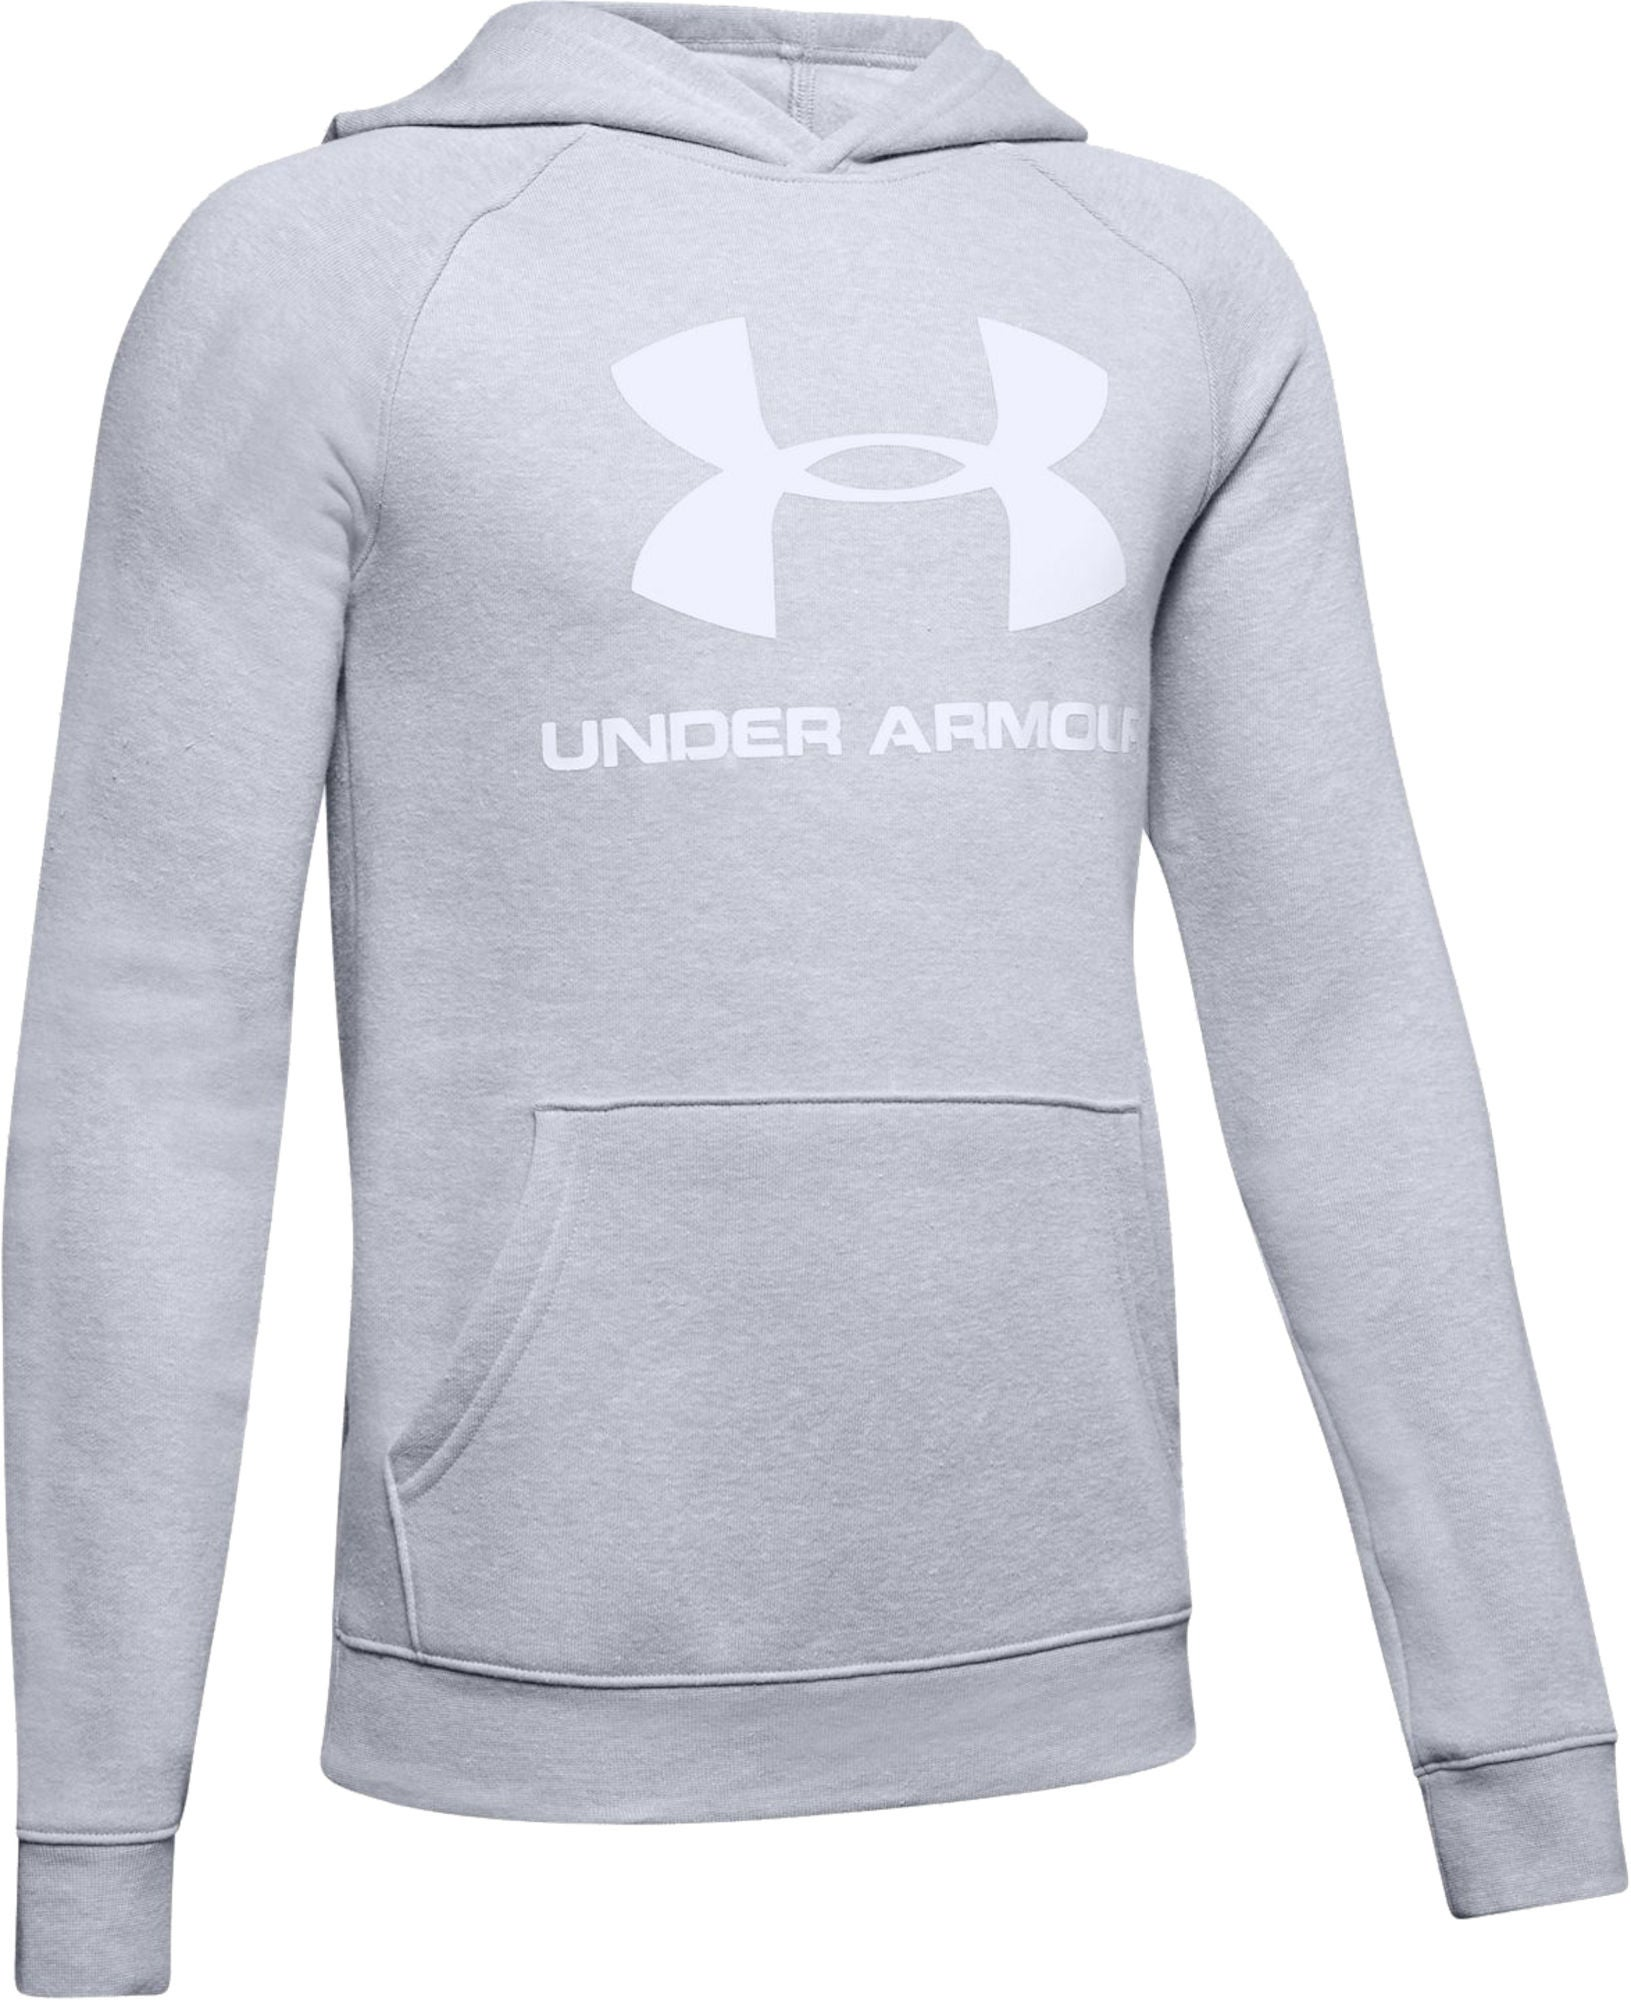 Under Armour Rival Logo Hoodie, Stealth Gray S